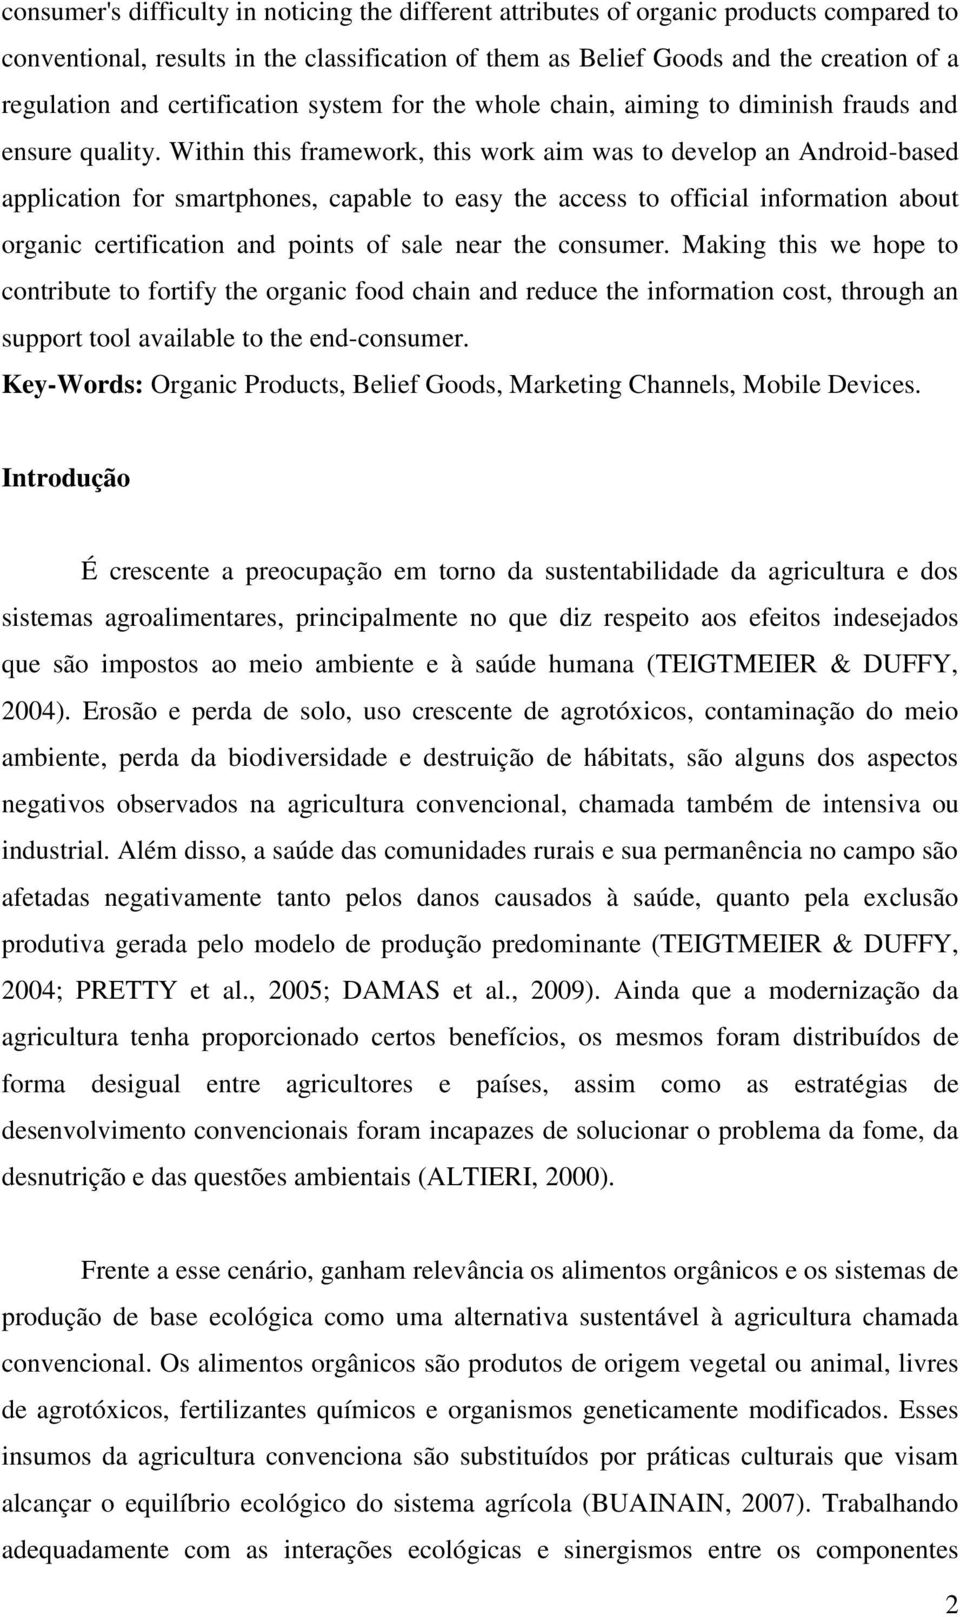 Within this framework, this work aim was to develop an Android-based application for smartphones, capable to easy the access to official information about organic certification and points of sale